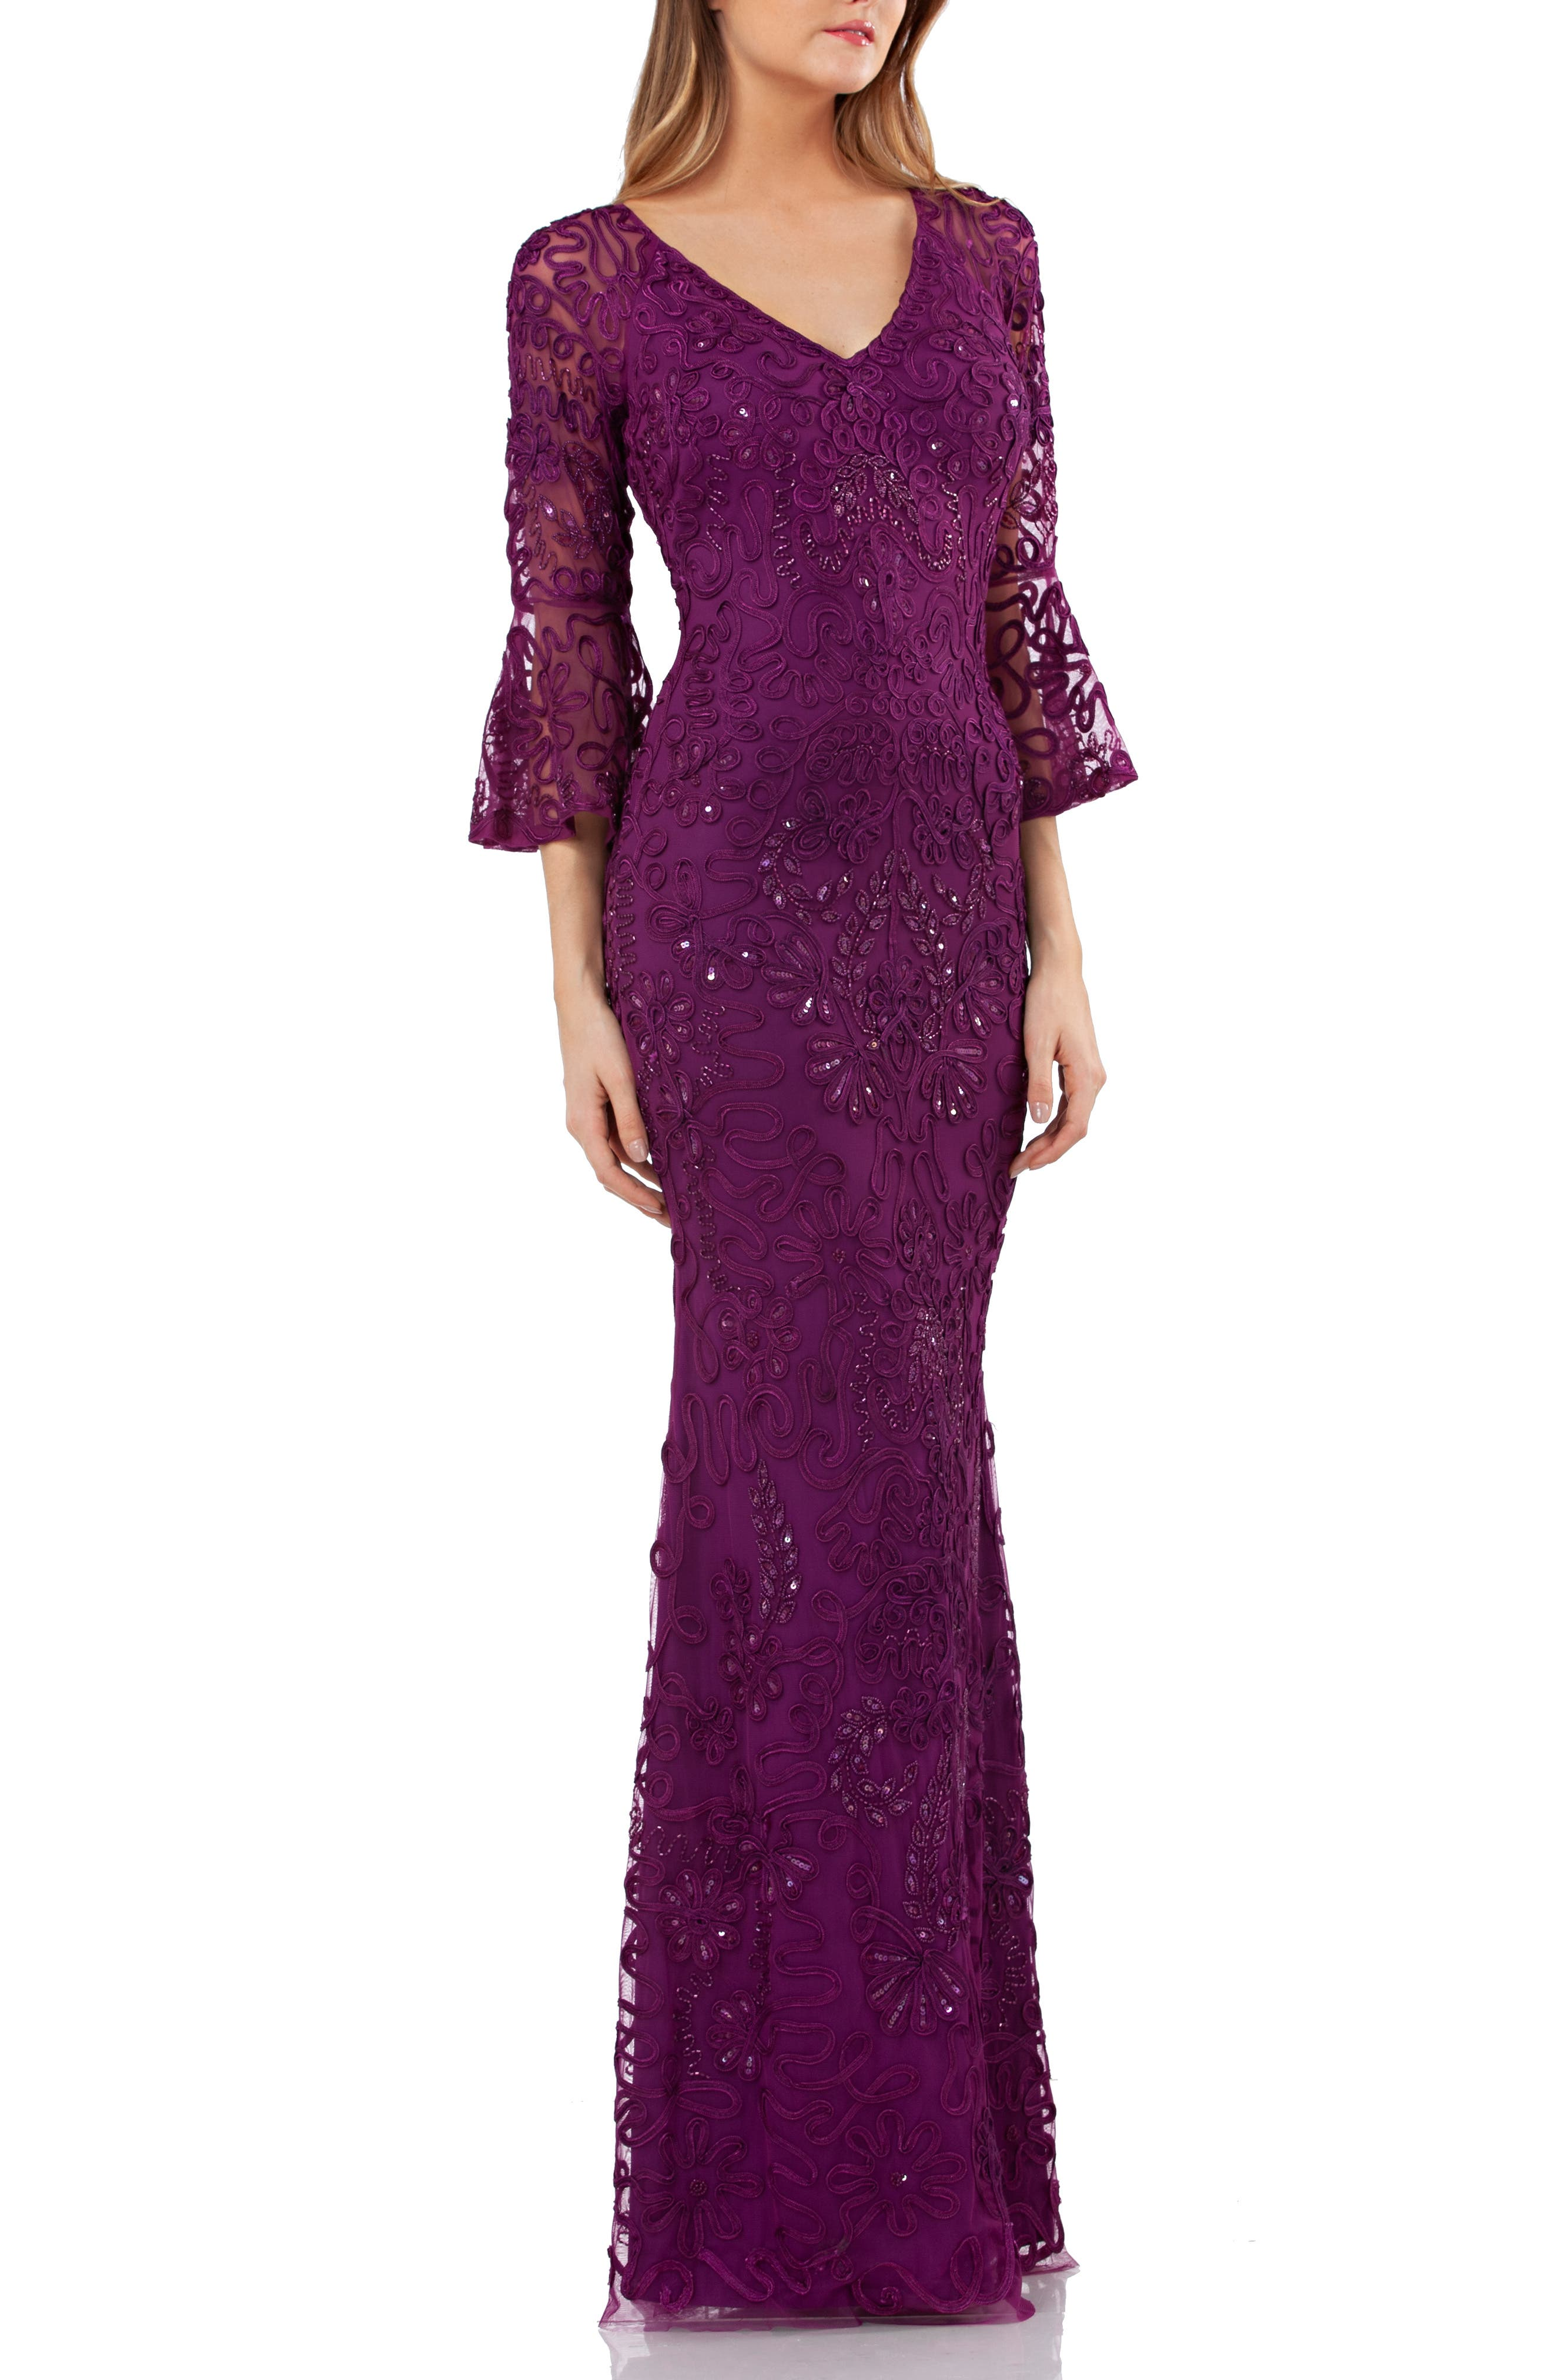 Js Collections Soutache Embroidered Trumpet Gown, Purple